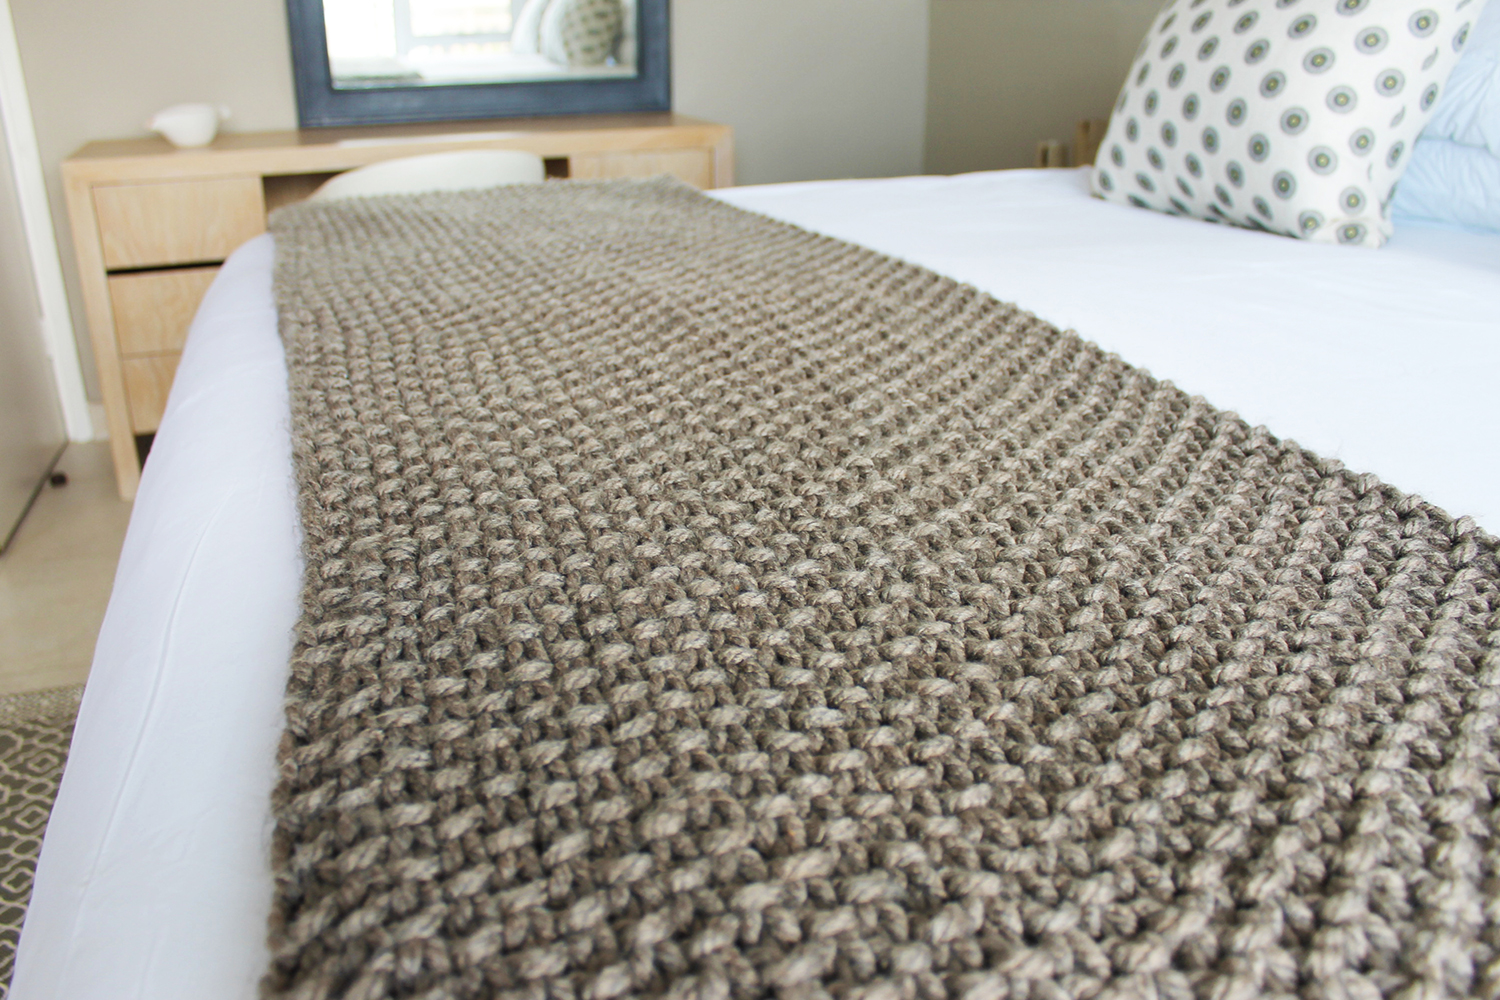 FOREST MOSS STITCH BLANKET   Hand knitted using mega-chunky yarn and needles